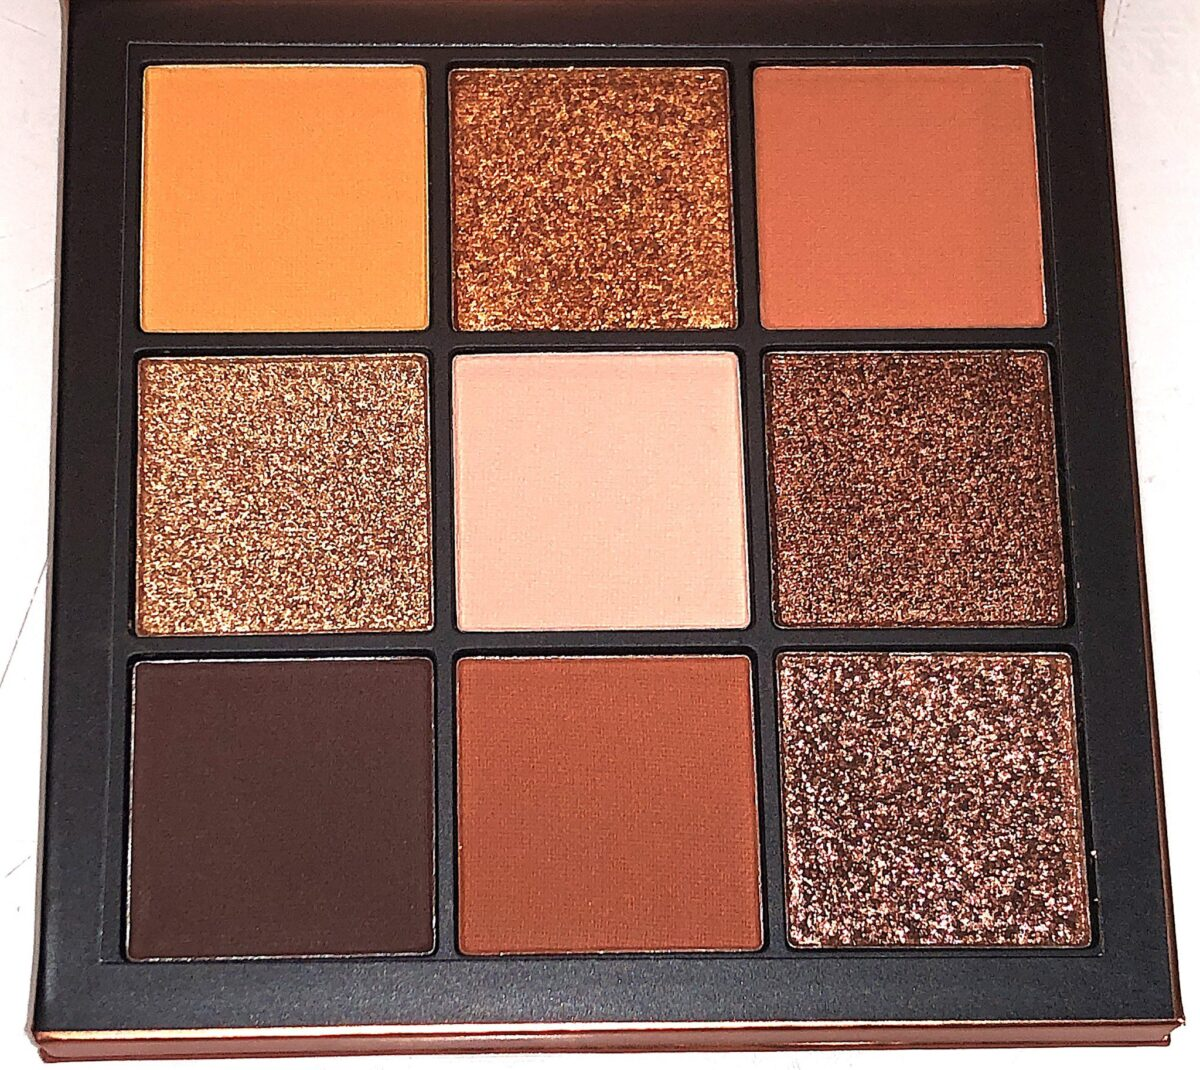 THE FALL SHADES IN THE HYDA BEAUTY GEM OBSESSIONS PALETTE IN TOPAZ